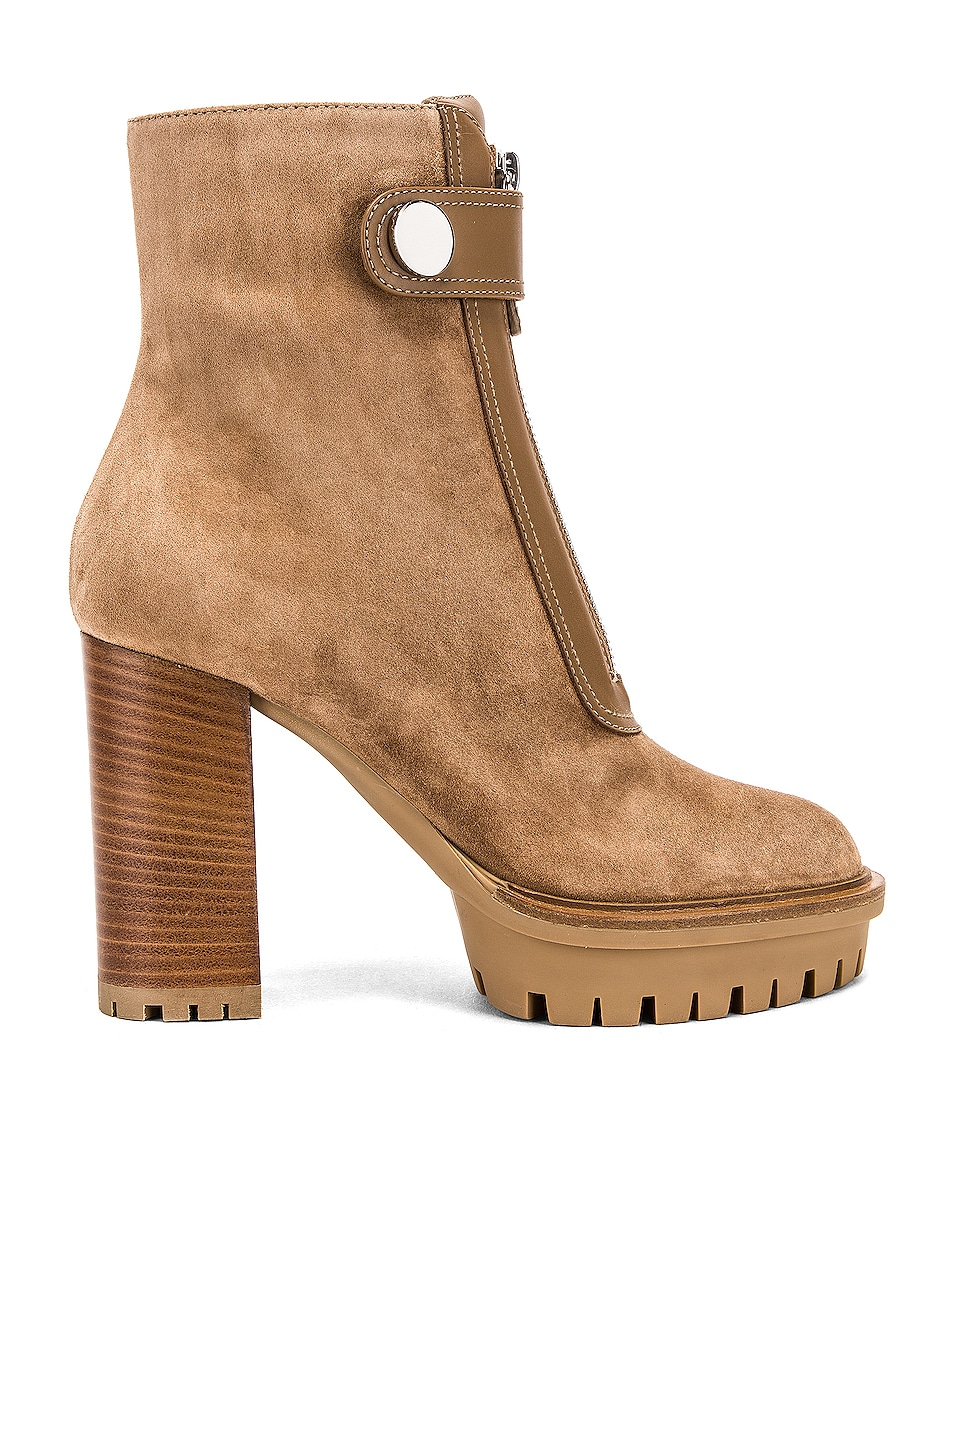 Image 1 of Gianvito Rossi Julian Zipper Ankle Heel Boots in Camel